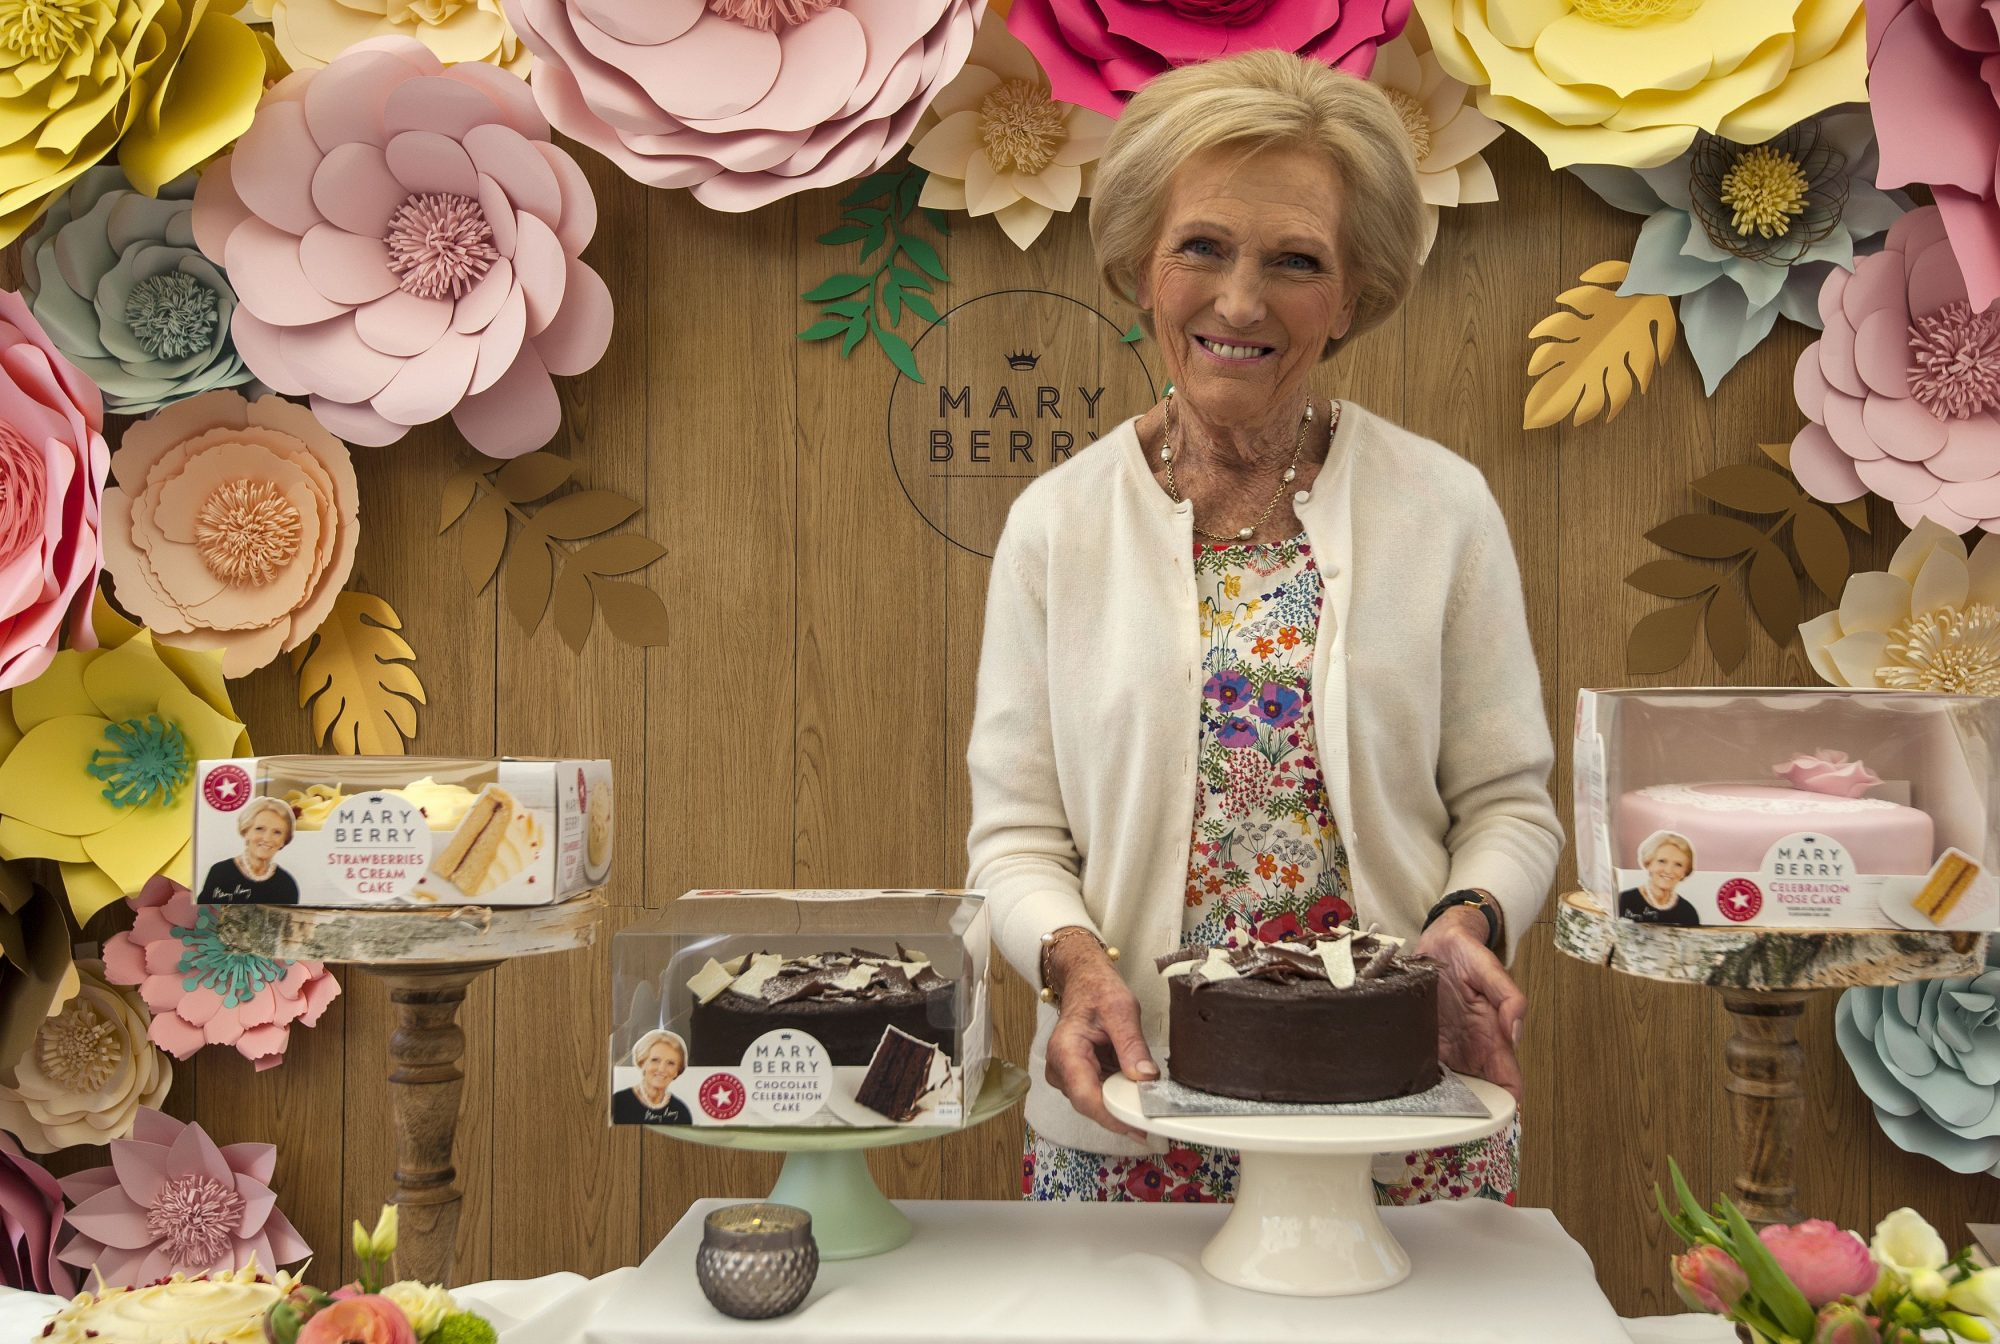 Mary Berry's Genius Tip for Icing Cakes—Sans Crumbs